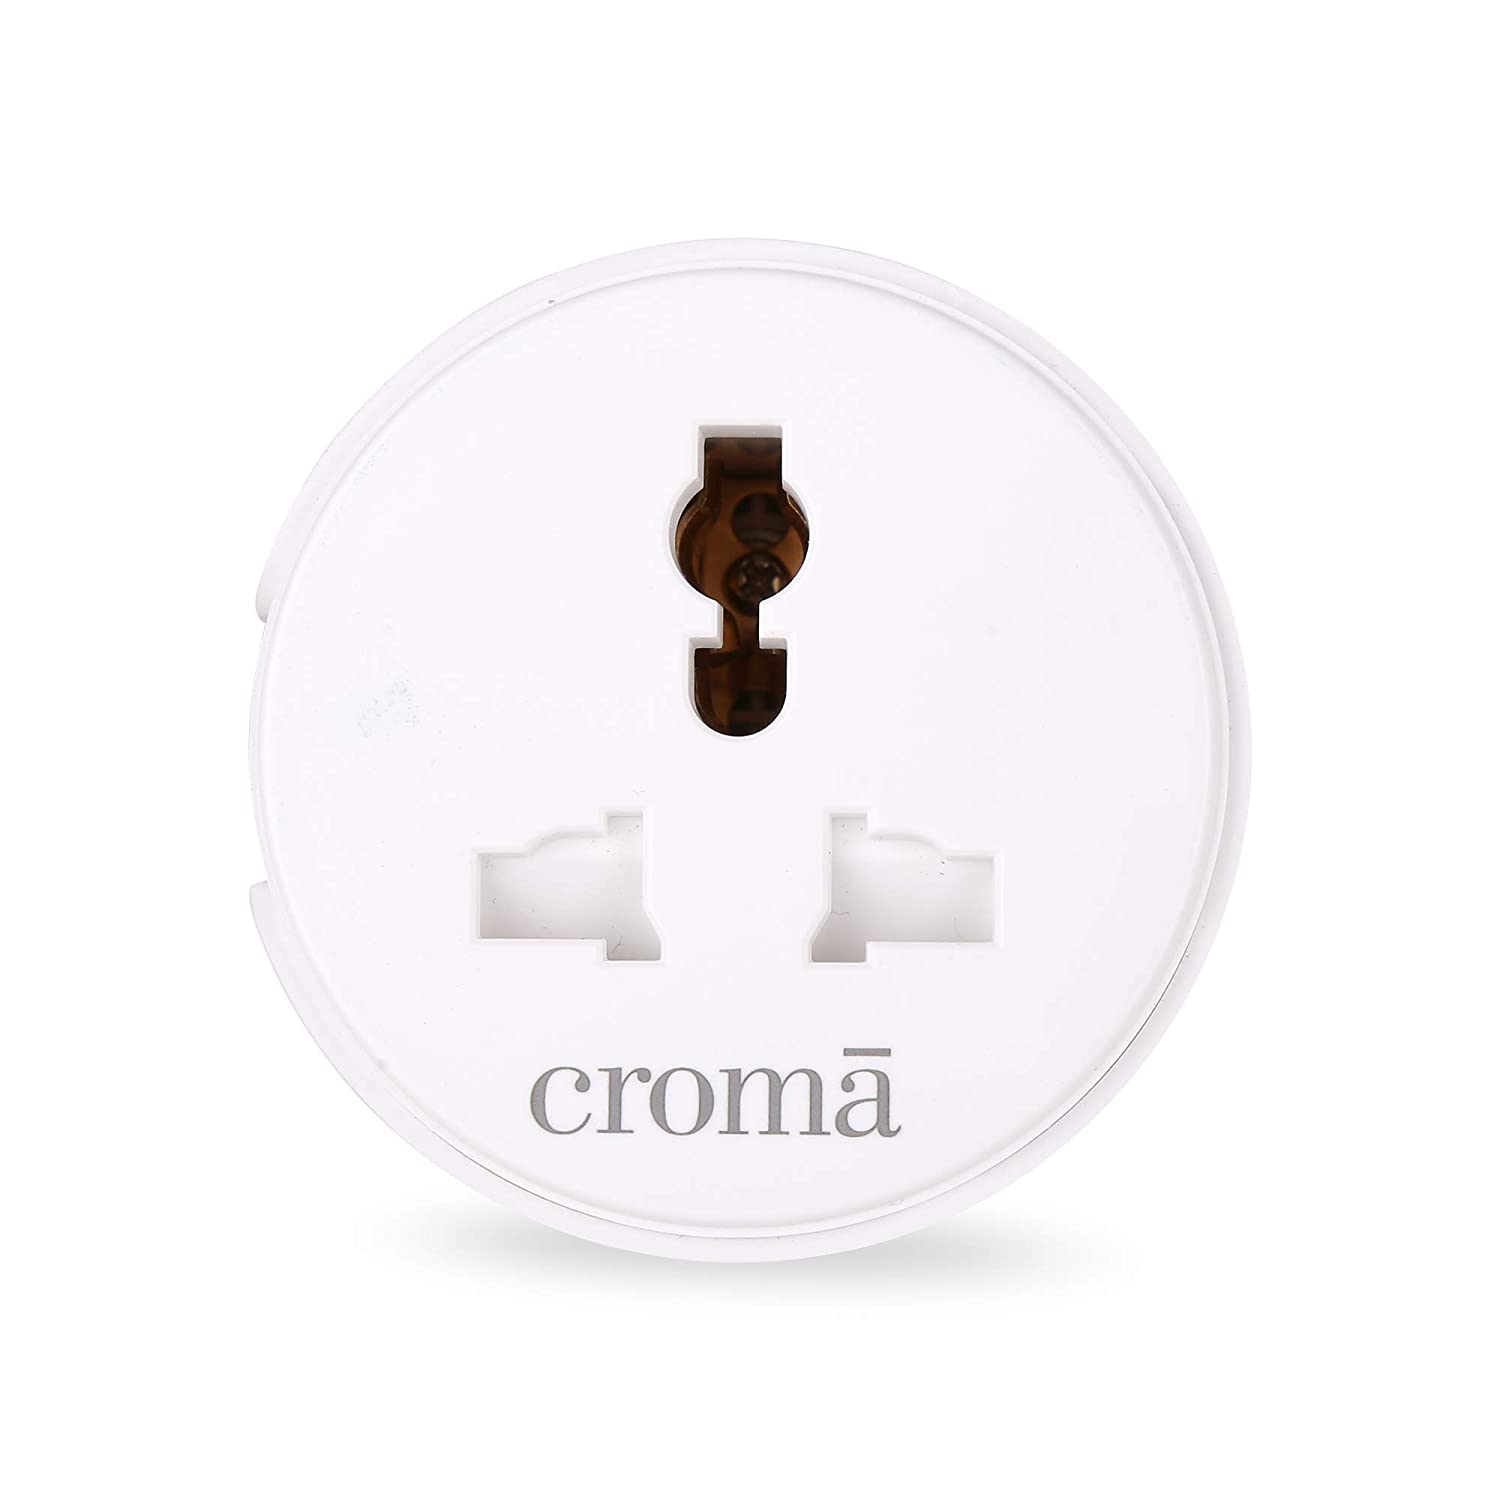 Croma 10A Wi-Fi Smart Plug Alexa & Google Home Compatible, Universal Plug Point for Low Power Devices (CRCP1005, White)